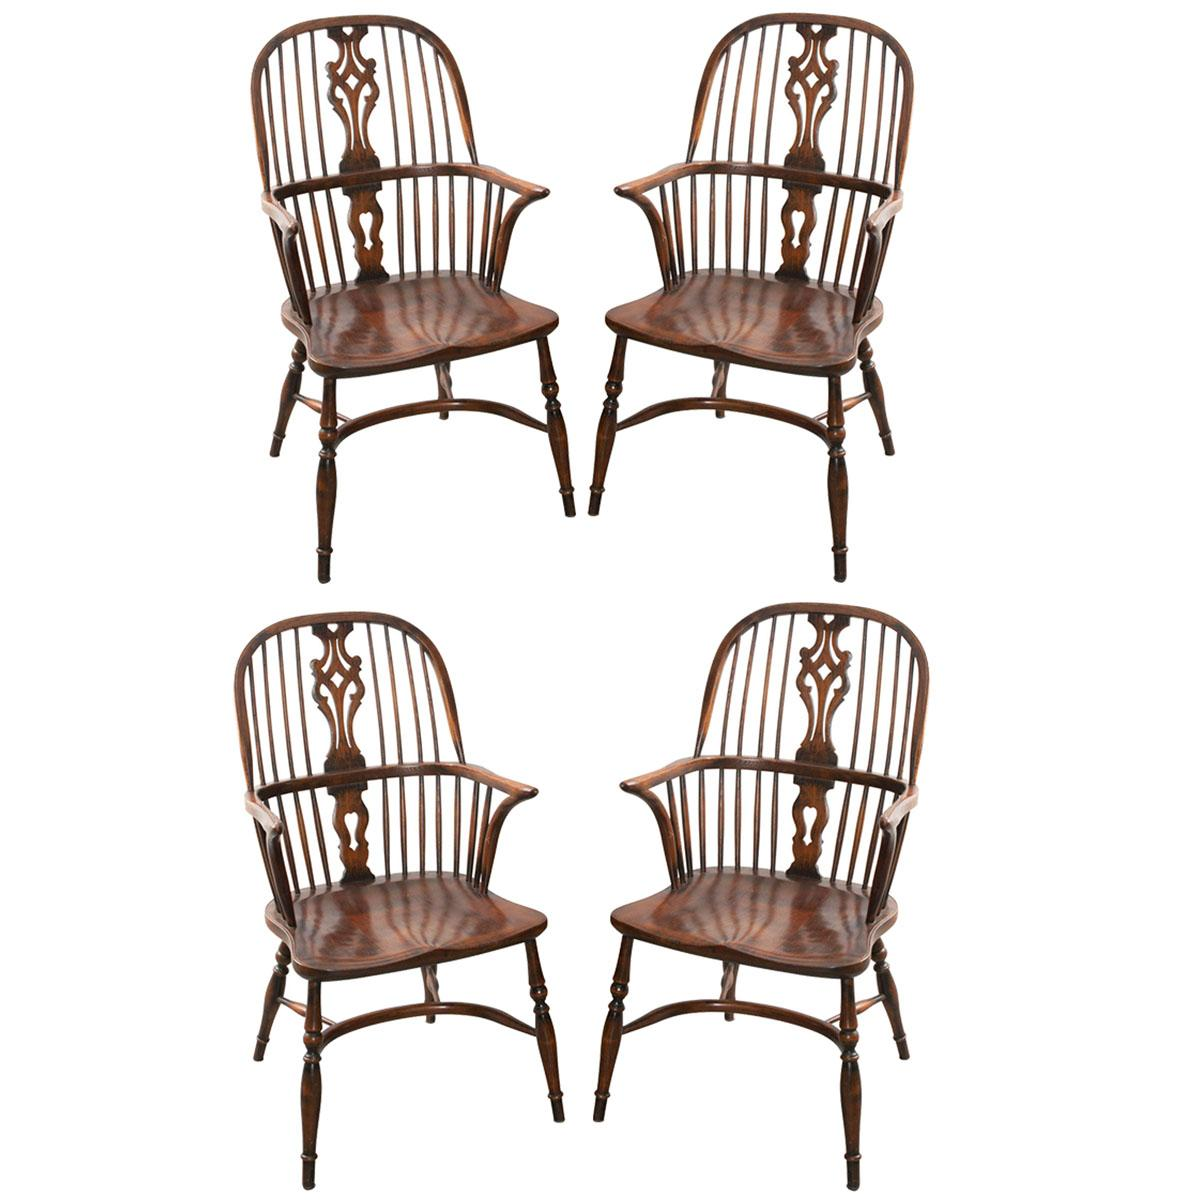 oak windsor chairs office chair without armrest english style set at 1stdibs for sale